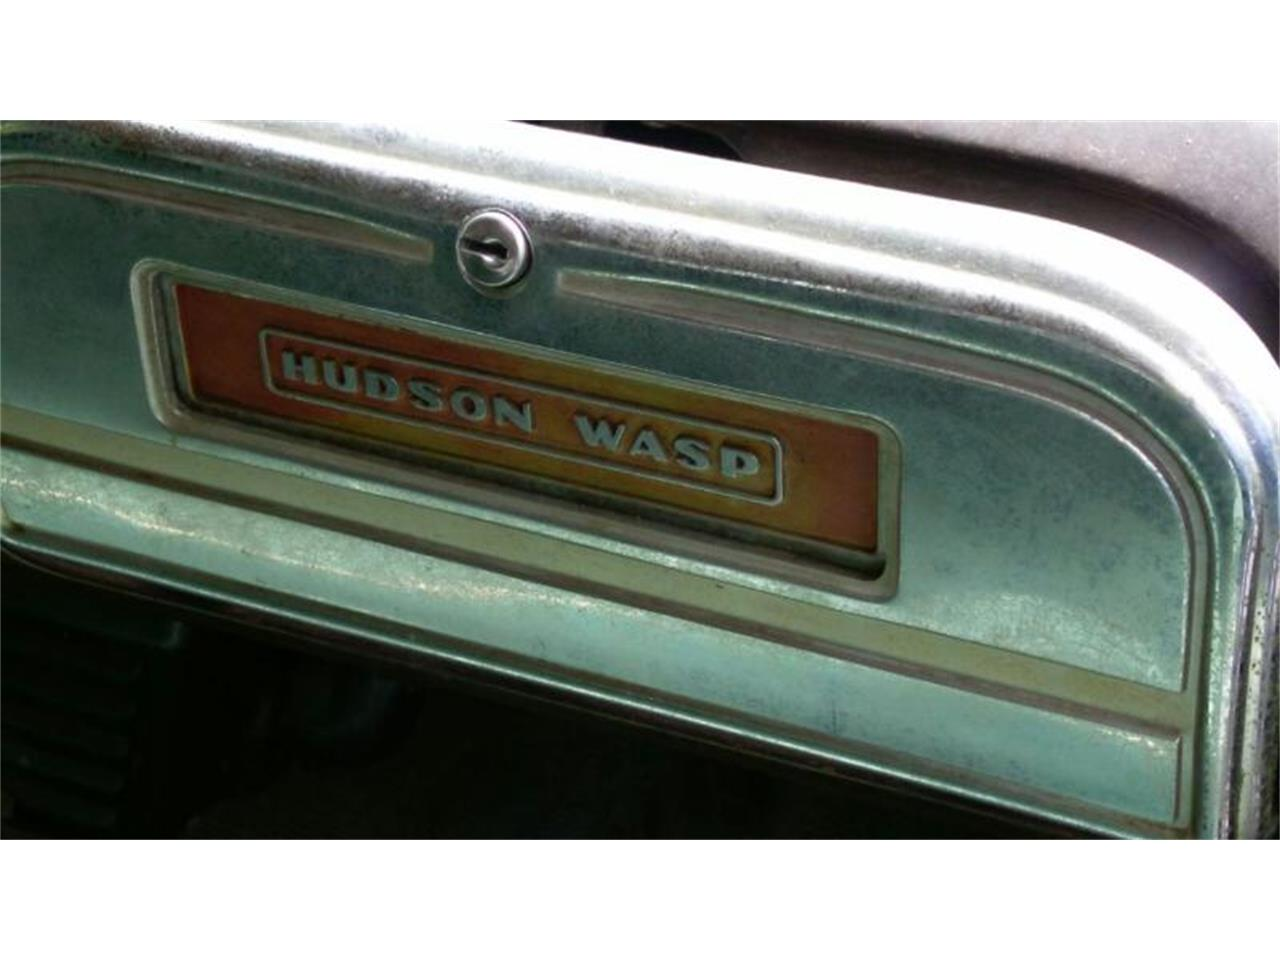 Large Picture of '52 Hudson Wasp - $4,000.00 - LH89